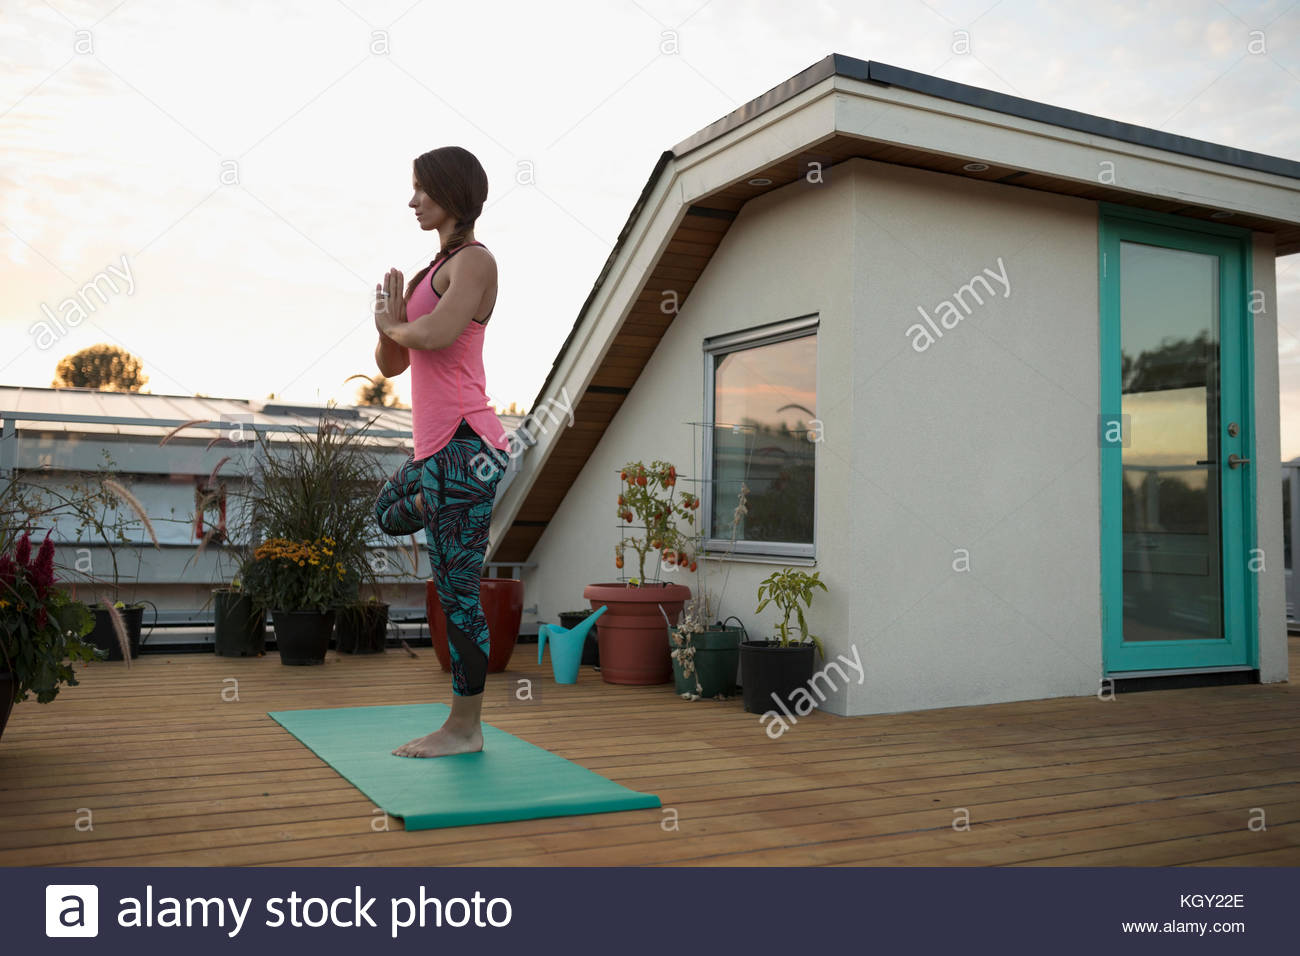 Serene woman standing in yoga tree pose with hands at heart center on yoga mat on deck patio - Stock Image